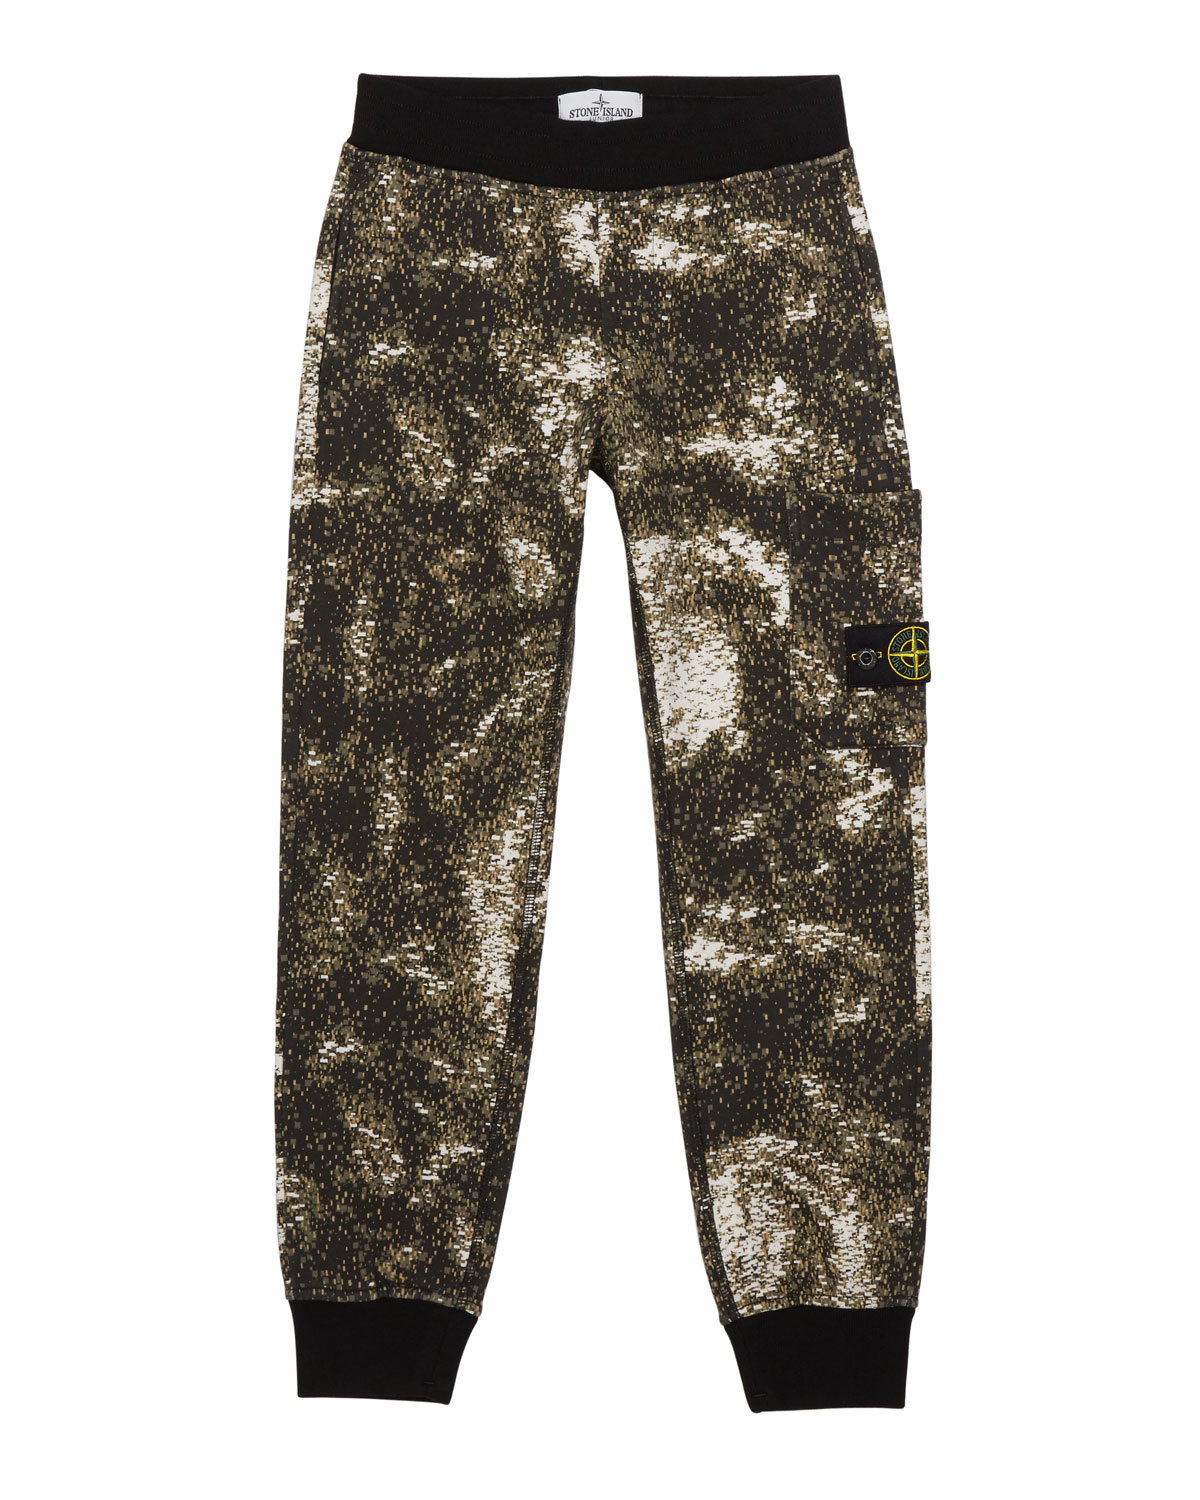 Stone Island Boy's Digital Space Print Fleece Jogger Pants, Size 8-10